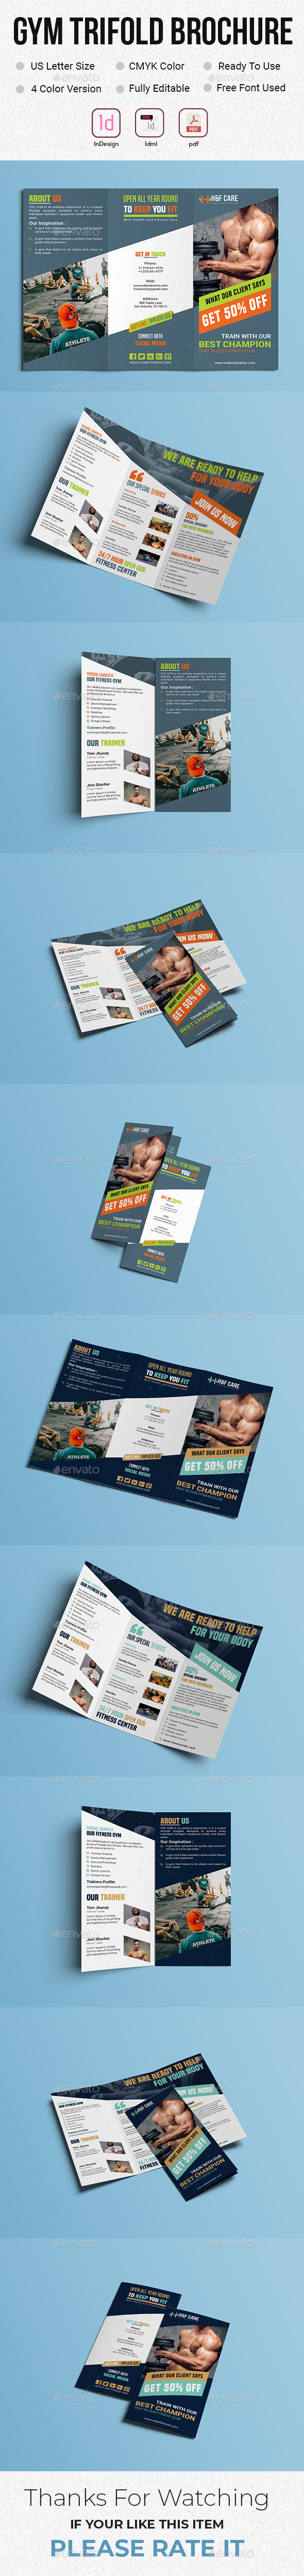 Gym Trifold Brochure - Brochures Print Templates